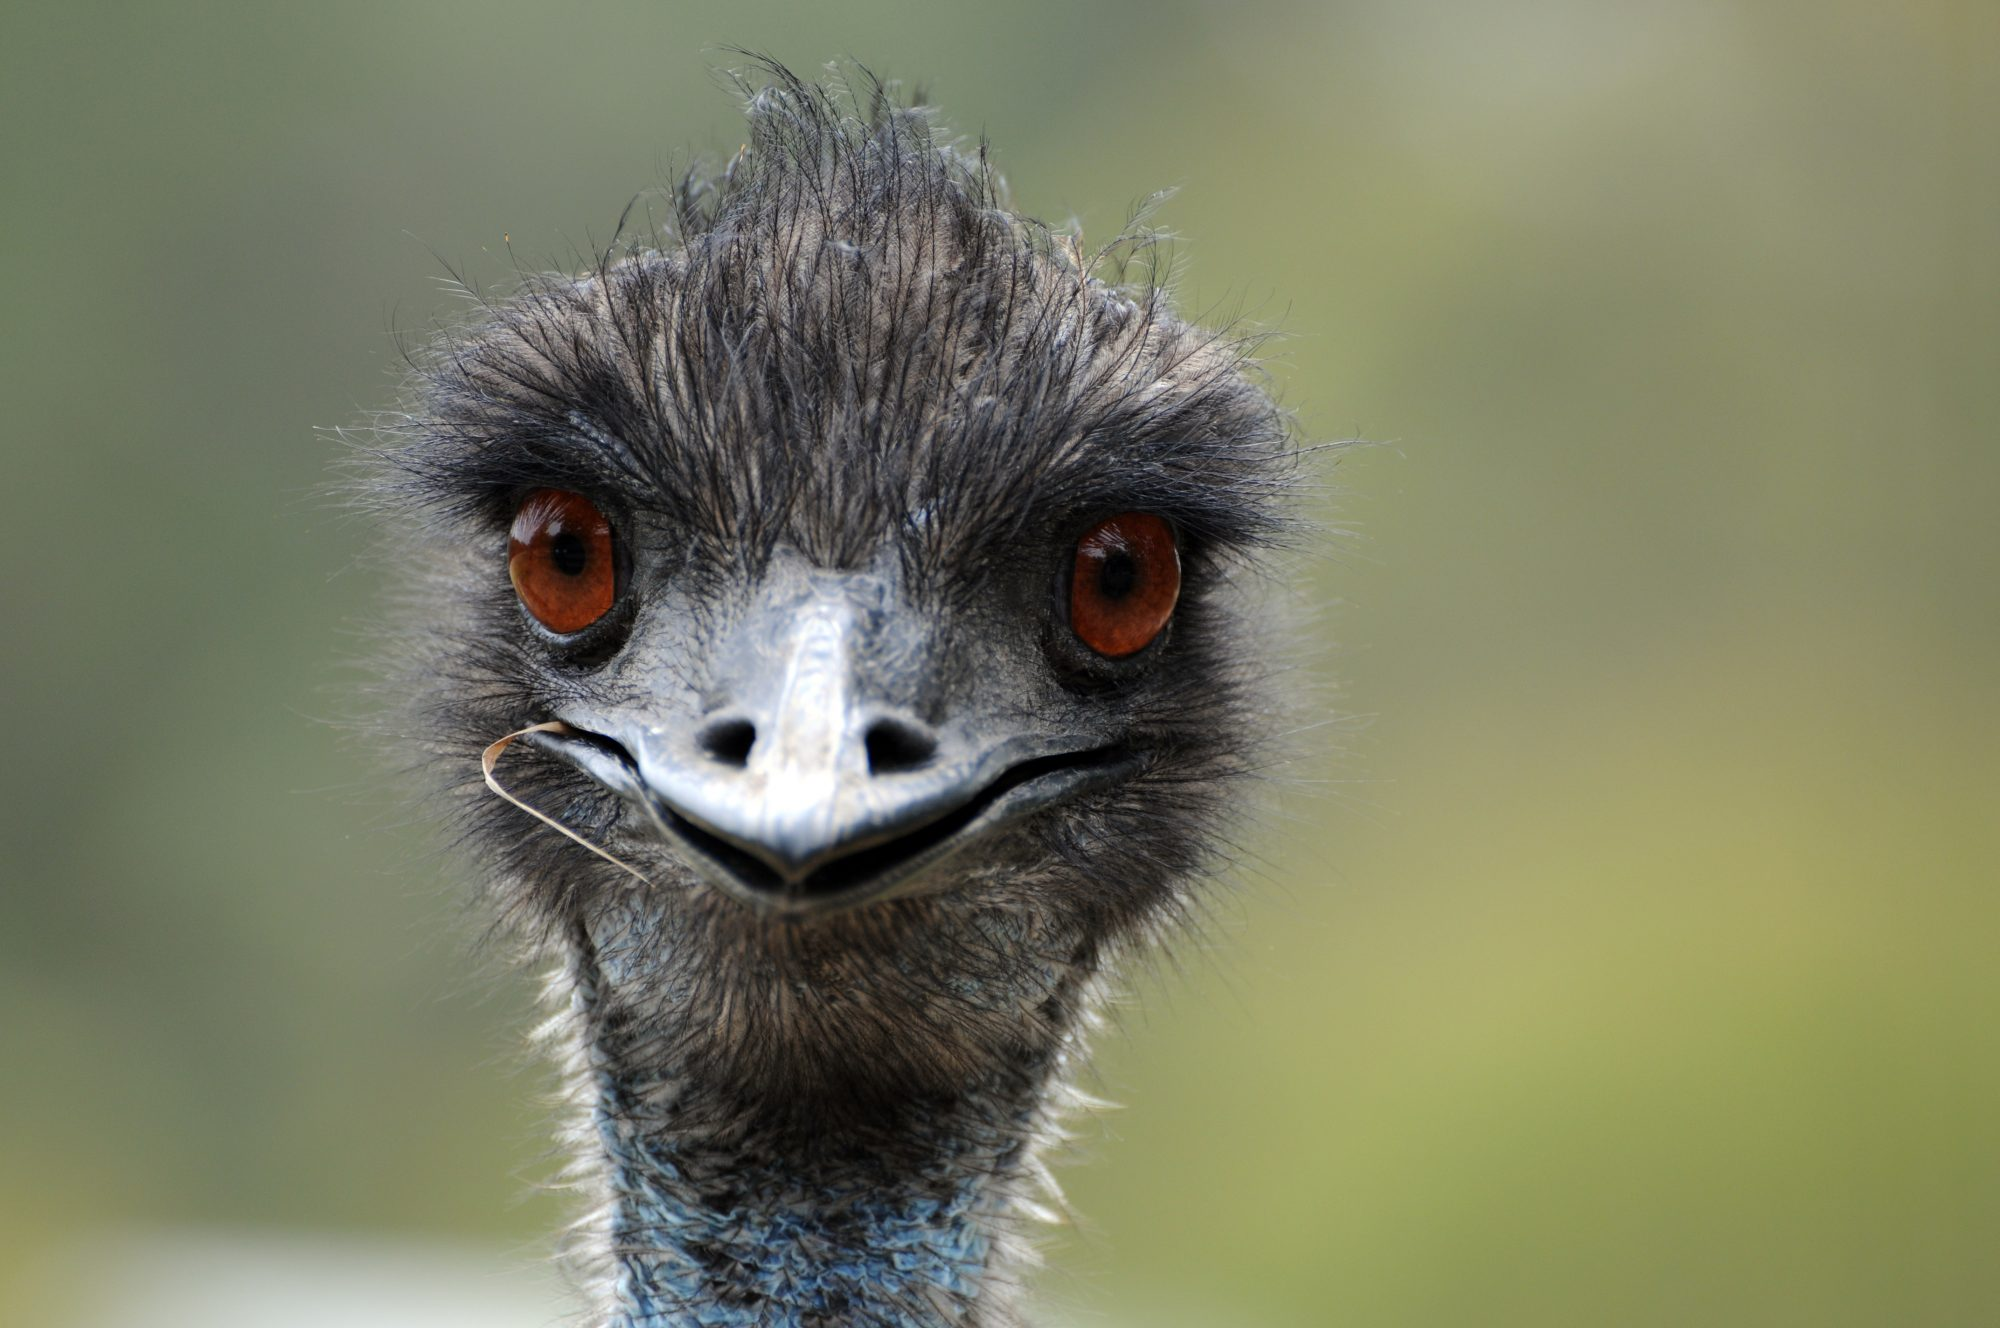 Have You Seen This Bird? An Emu Is On the Run in North Carolina